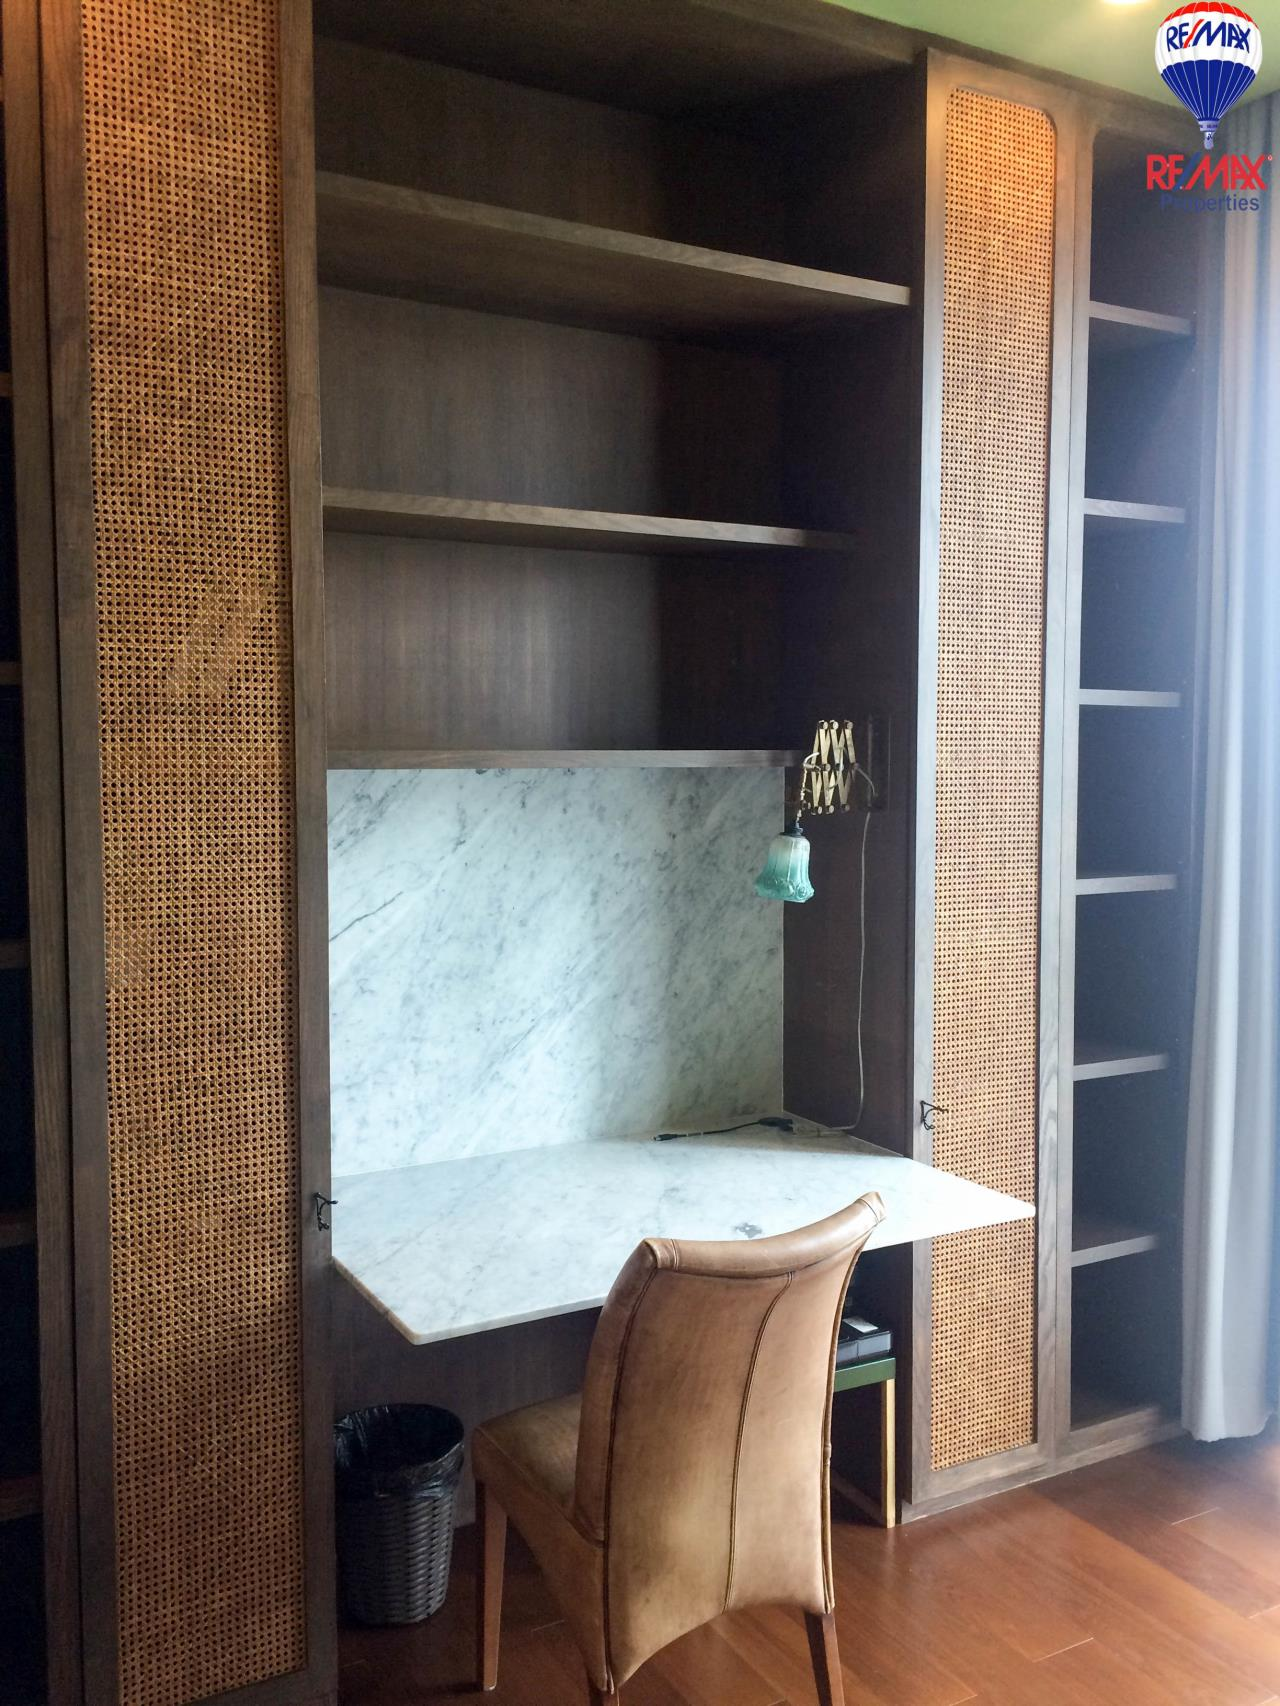 RE/MAX Properties Agency's 2 Bedrooms 86 Sq.M. for rent in Quattro by Sansiri 12